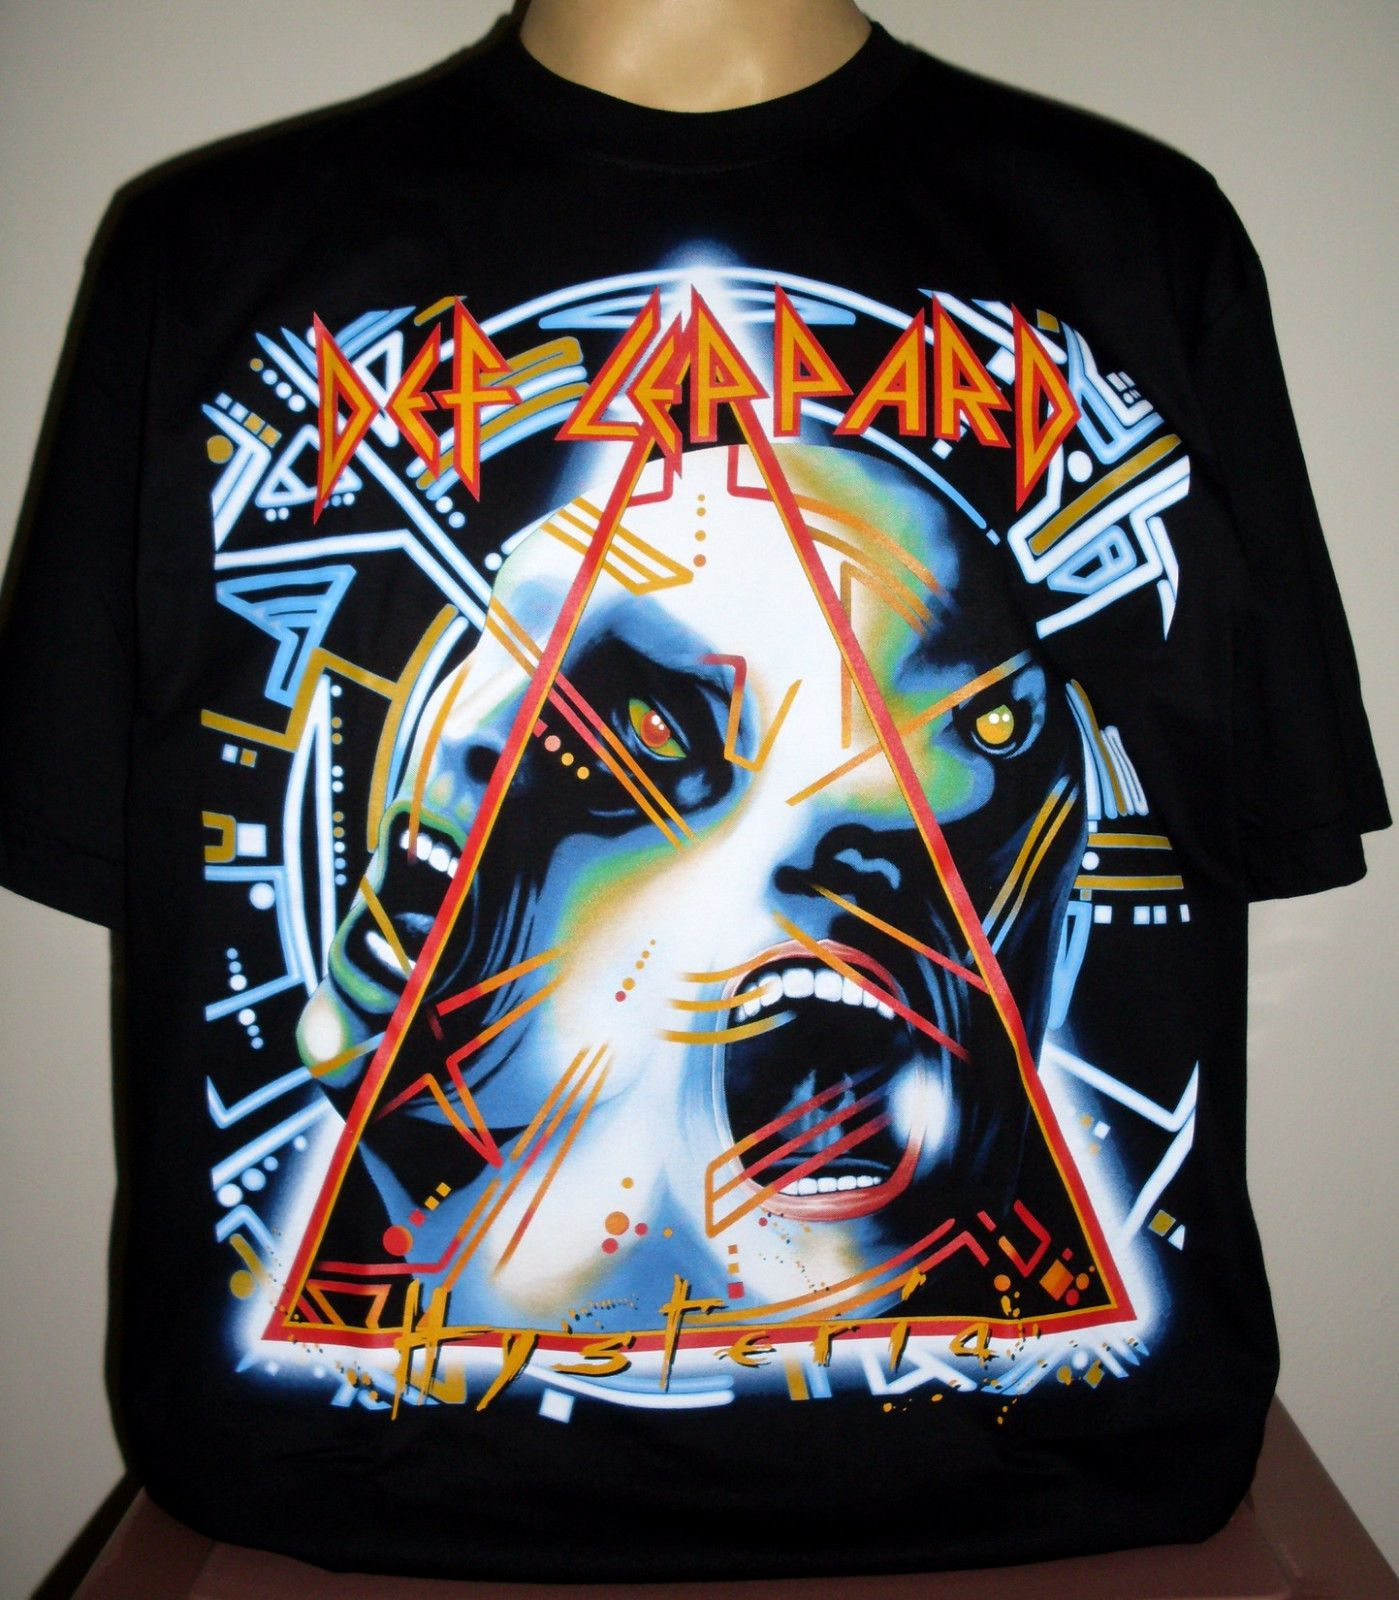 Black dog t shirt ebay - Details About Def Leppard Hysteria Top Quality T Shirt Size L 2xl 3xl Xxl Xxxl On Sale New